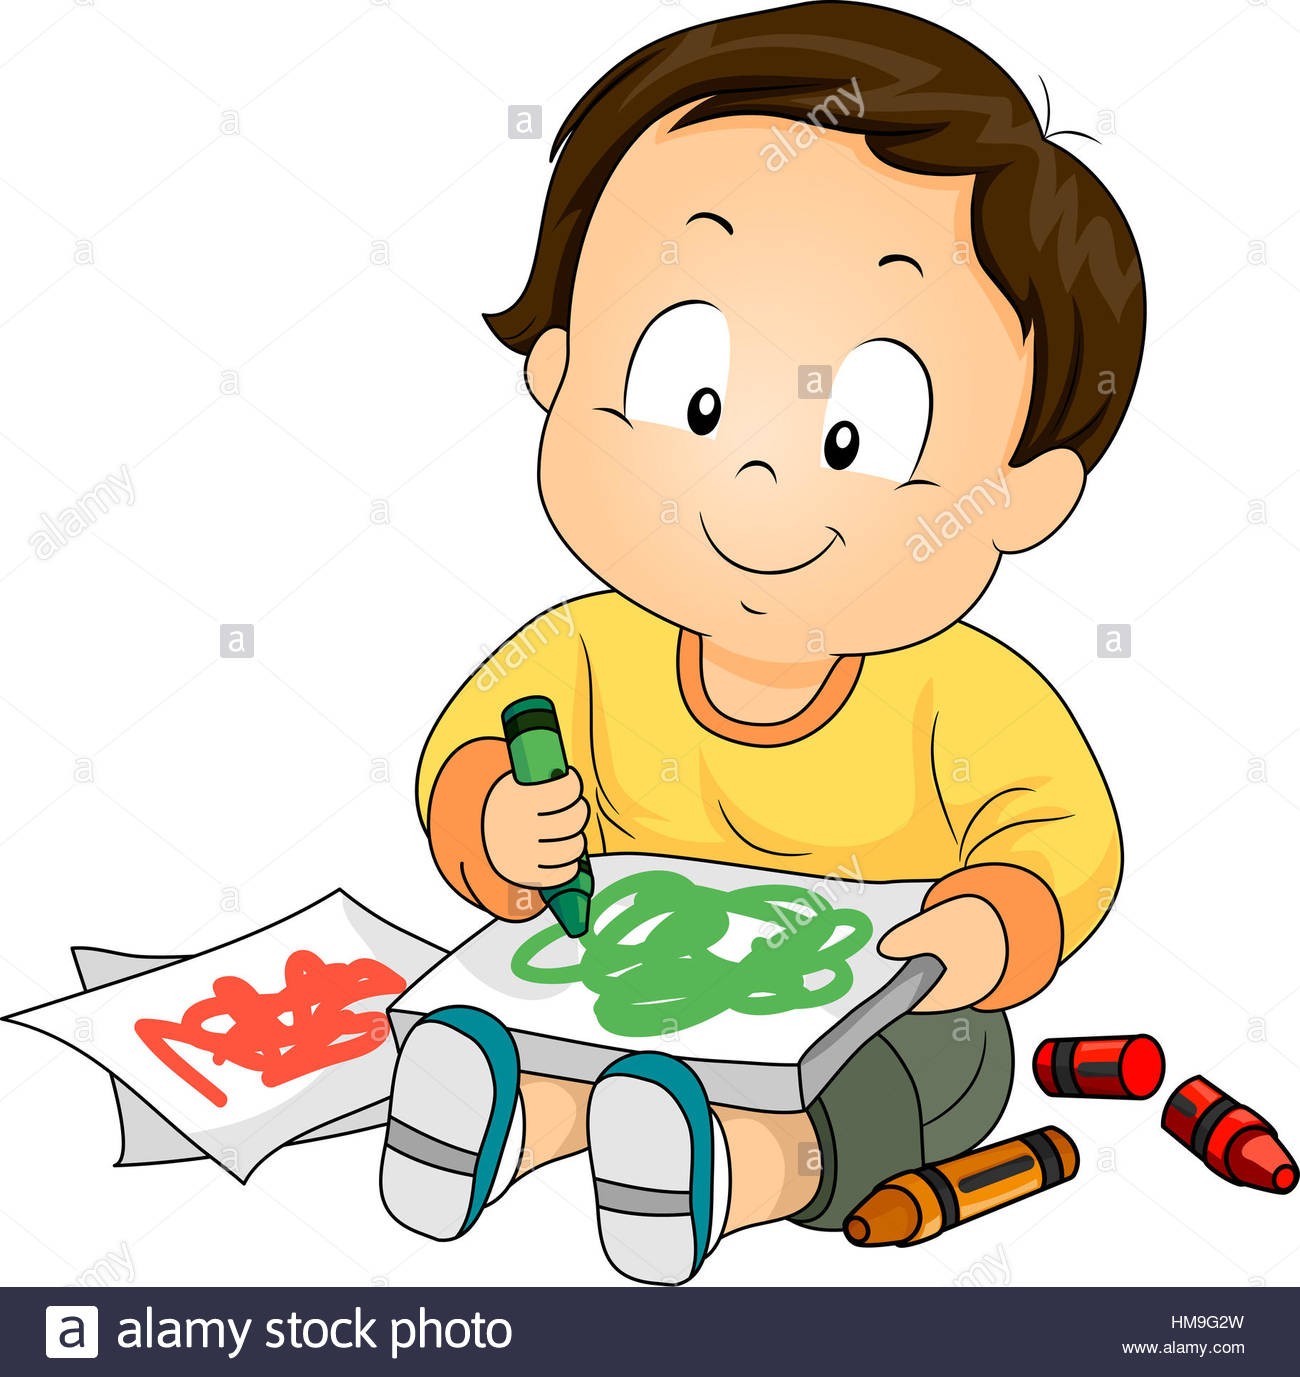 1300x1377 Illustration Of A Baby Boy Drawing Doodles With Crayons Stock